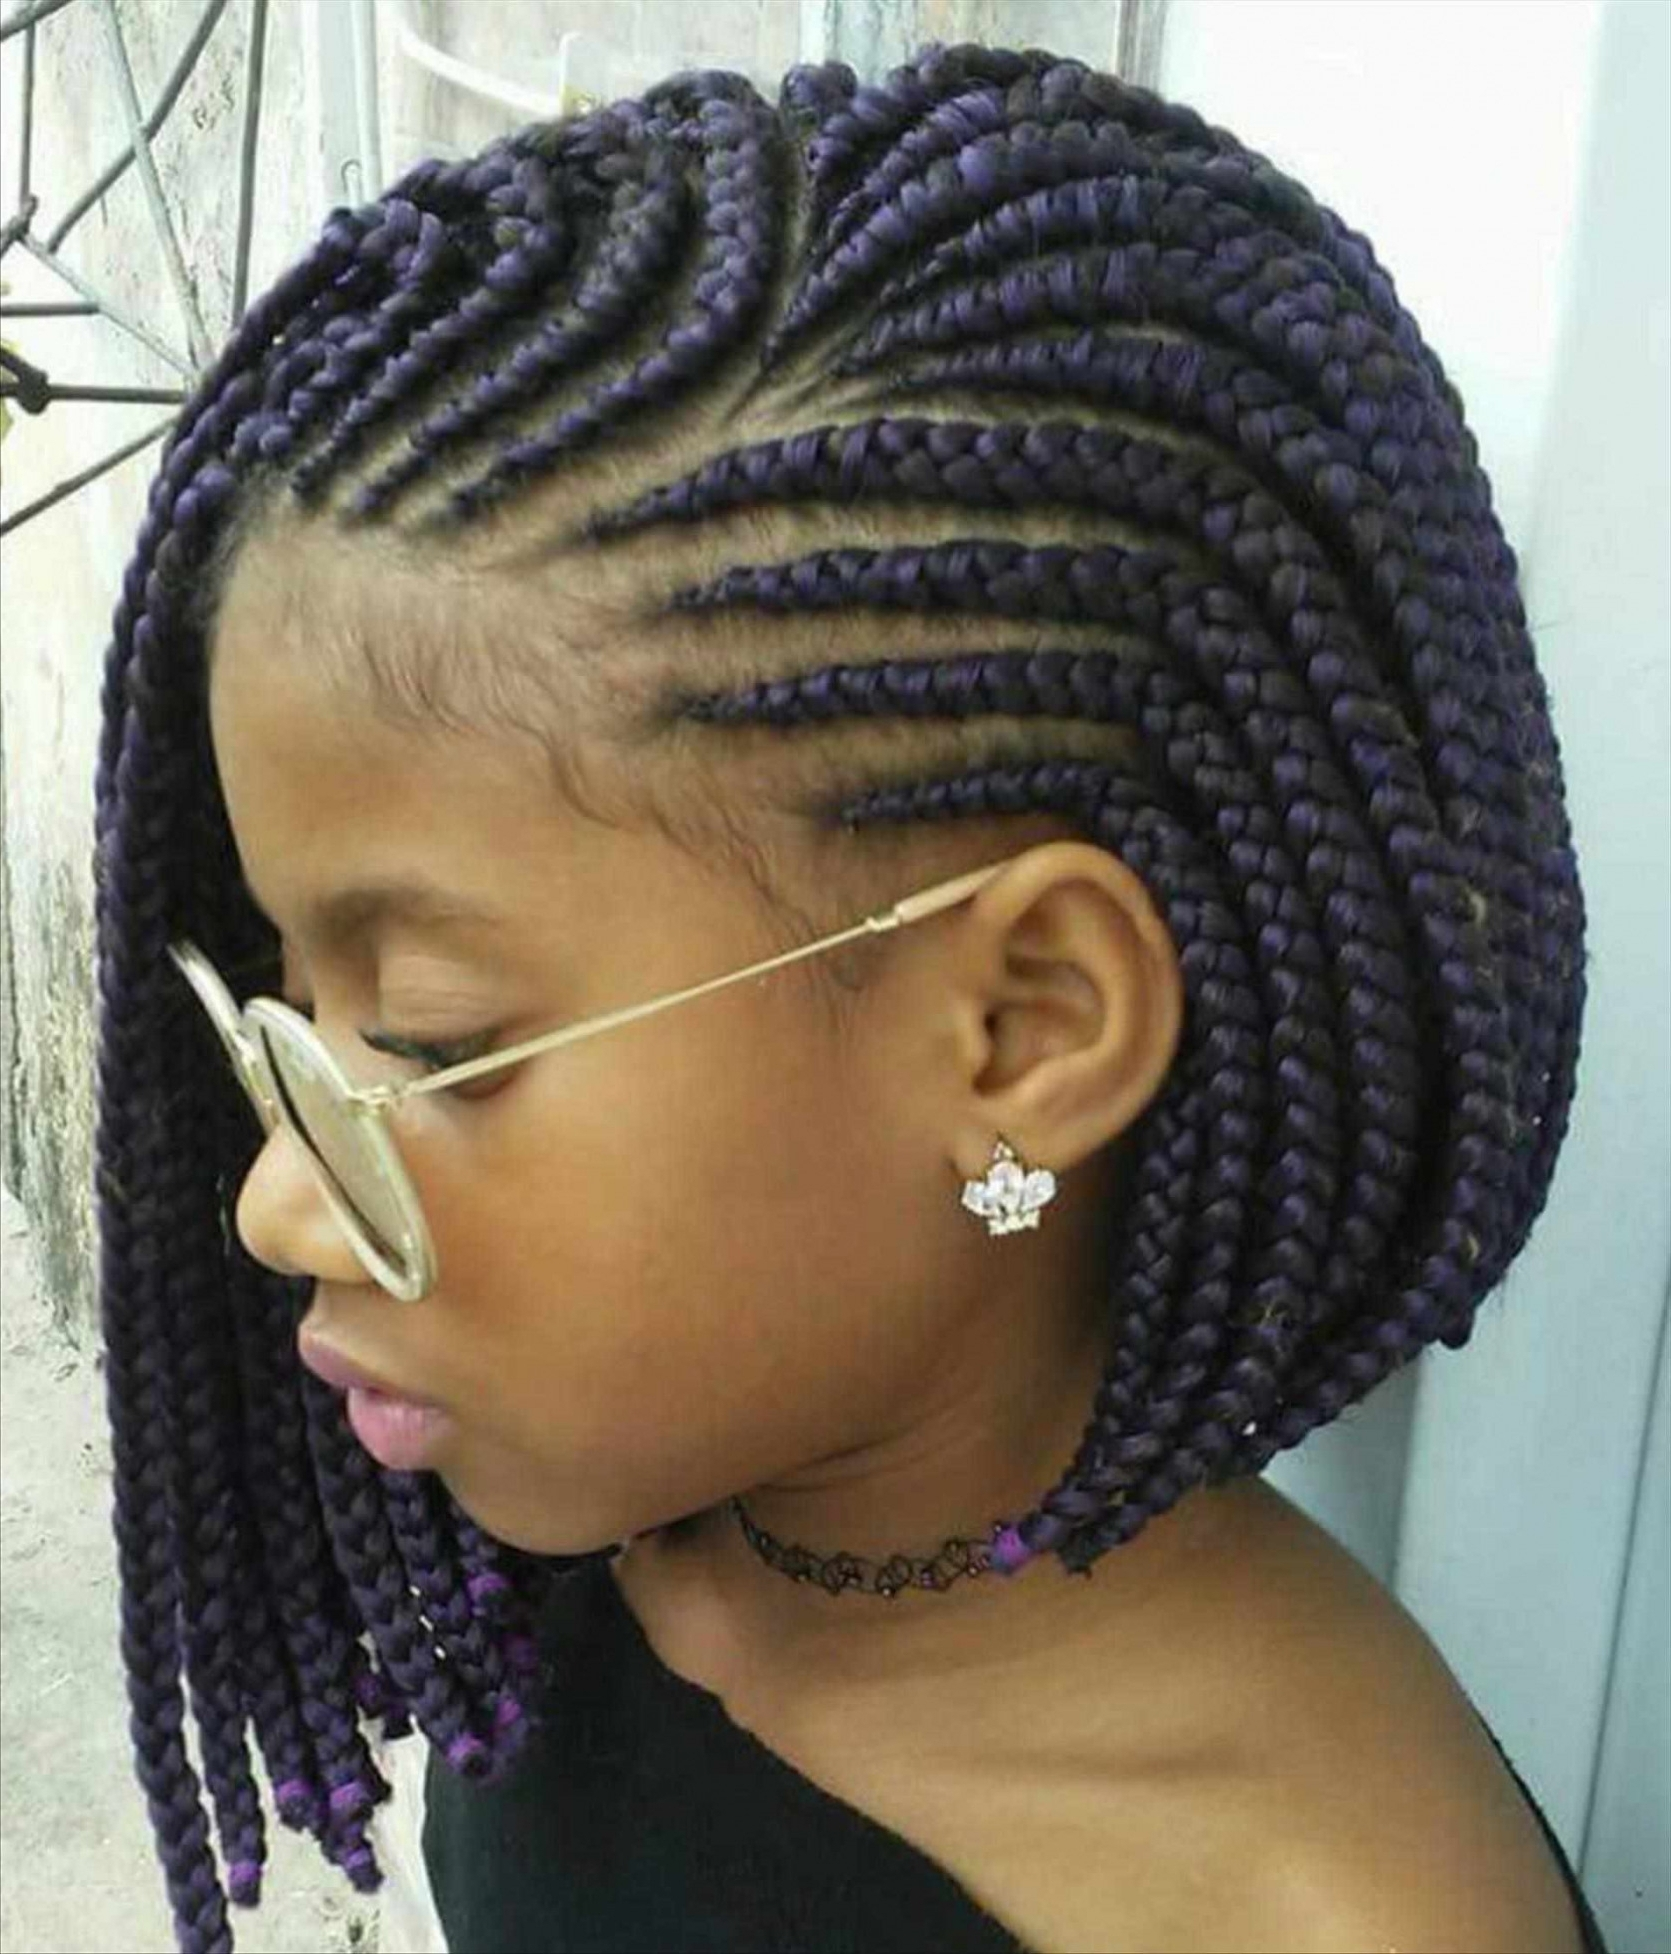 Best And Newest South Africa Braided Hairstyles Pertaining To African Braids Hairstyles Pictures South Hairstyle Images Remarkable (View 11 of 15)